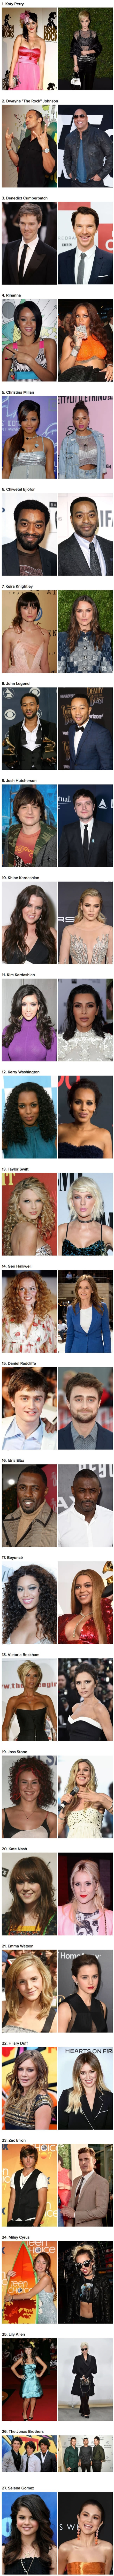 Celebs 10 years ago compared with now